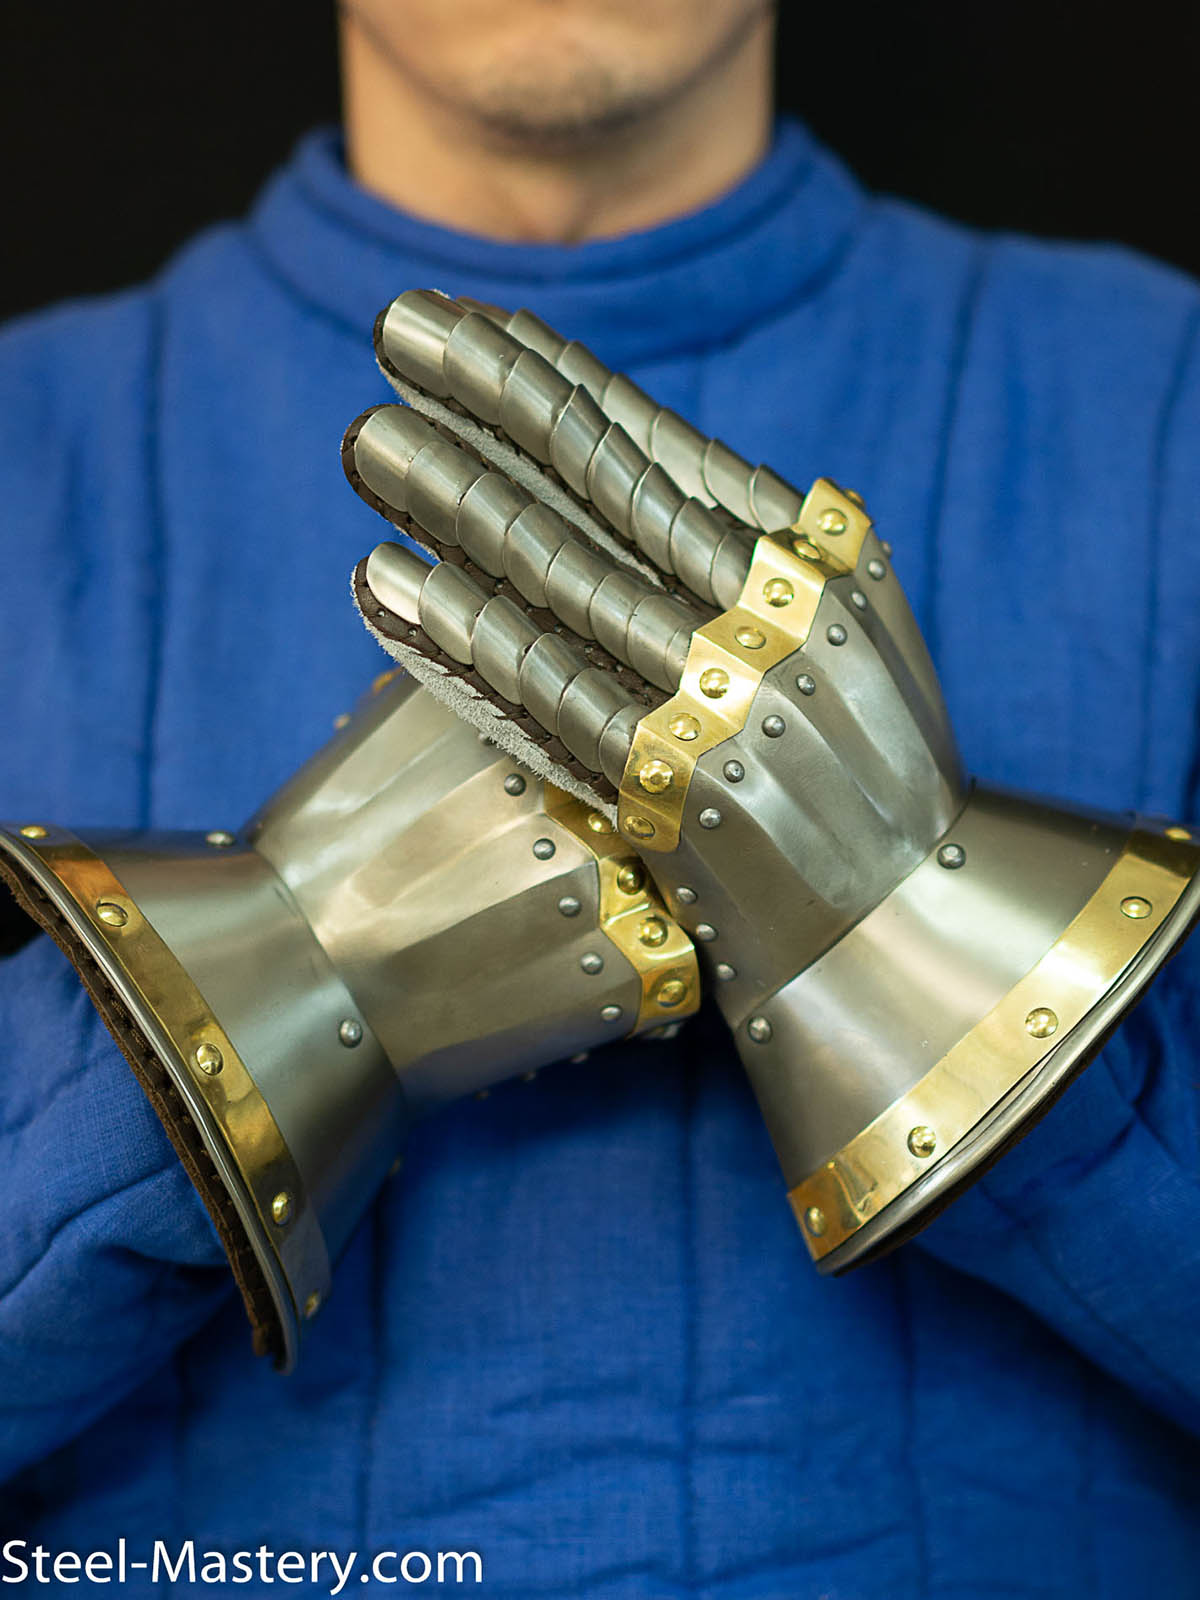 How to wear medieval gloves